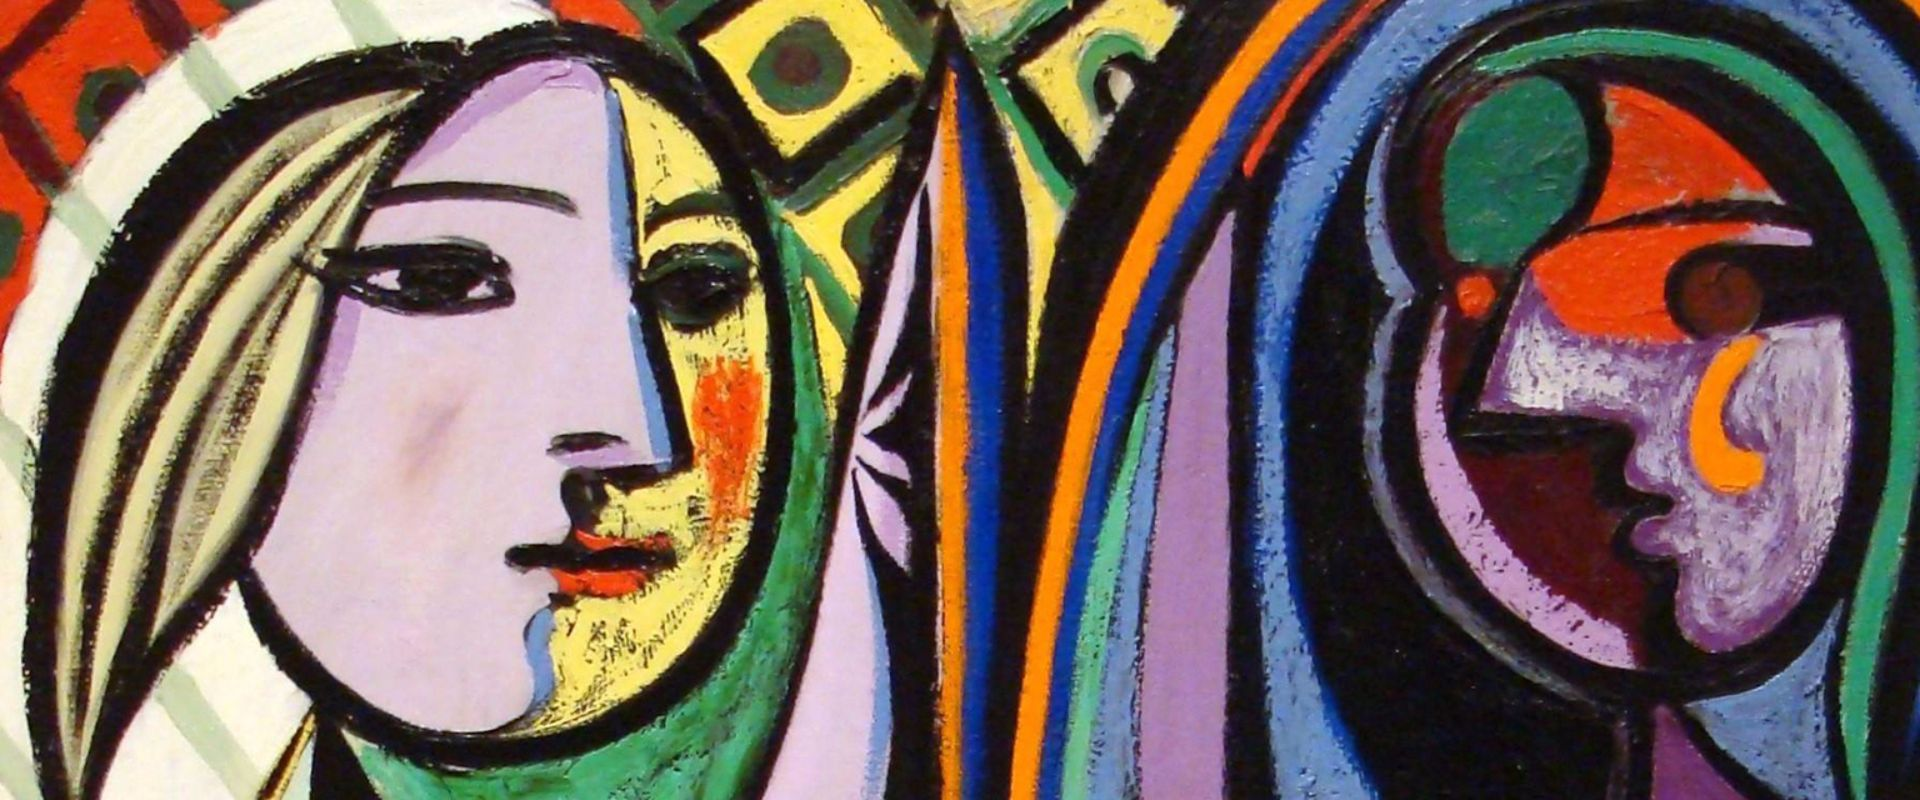 Pablo Picasso Artworks Collection | Buy Posters, Frames, Canvas, Digital Art & Large Size Prints Of The Famous Modern Master's Artworks